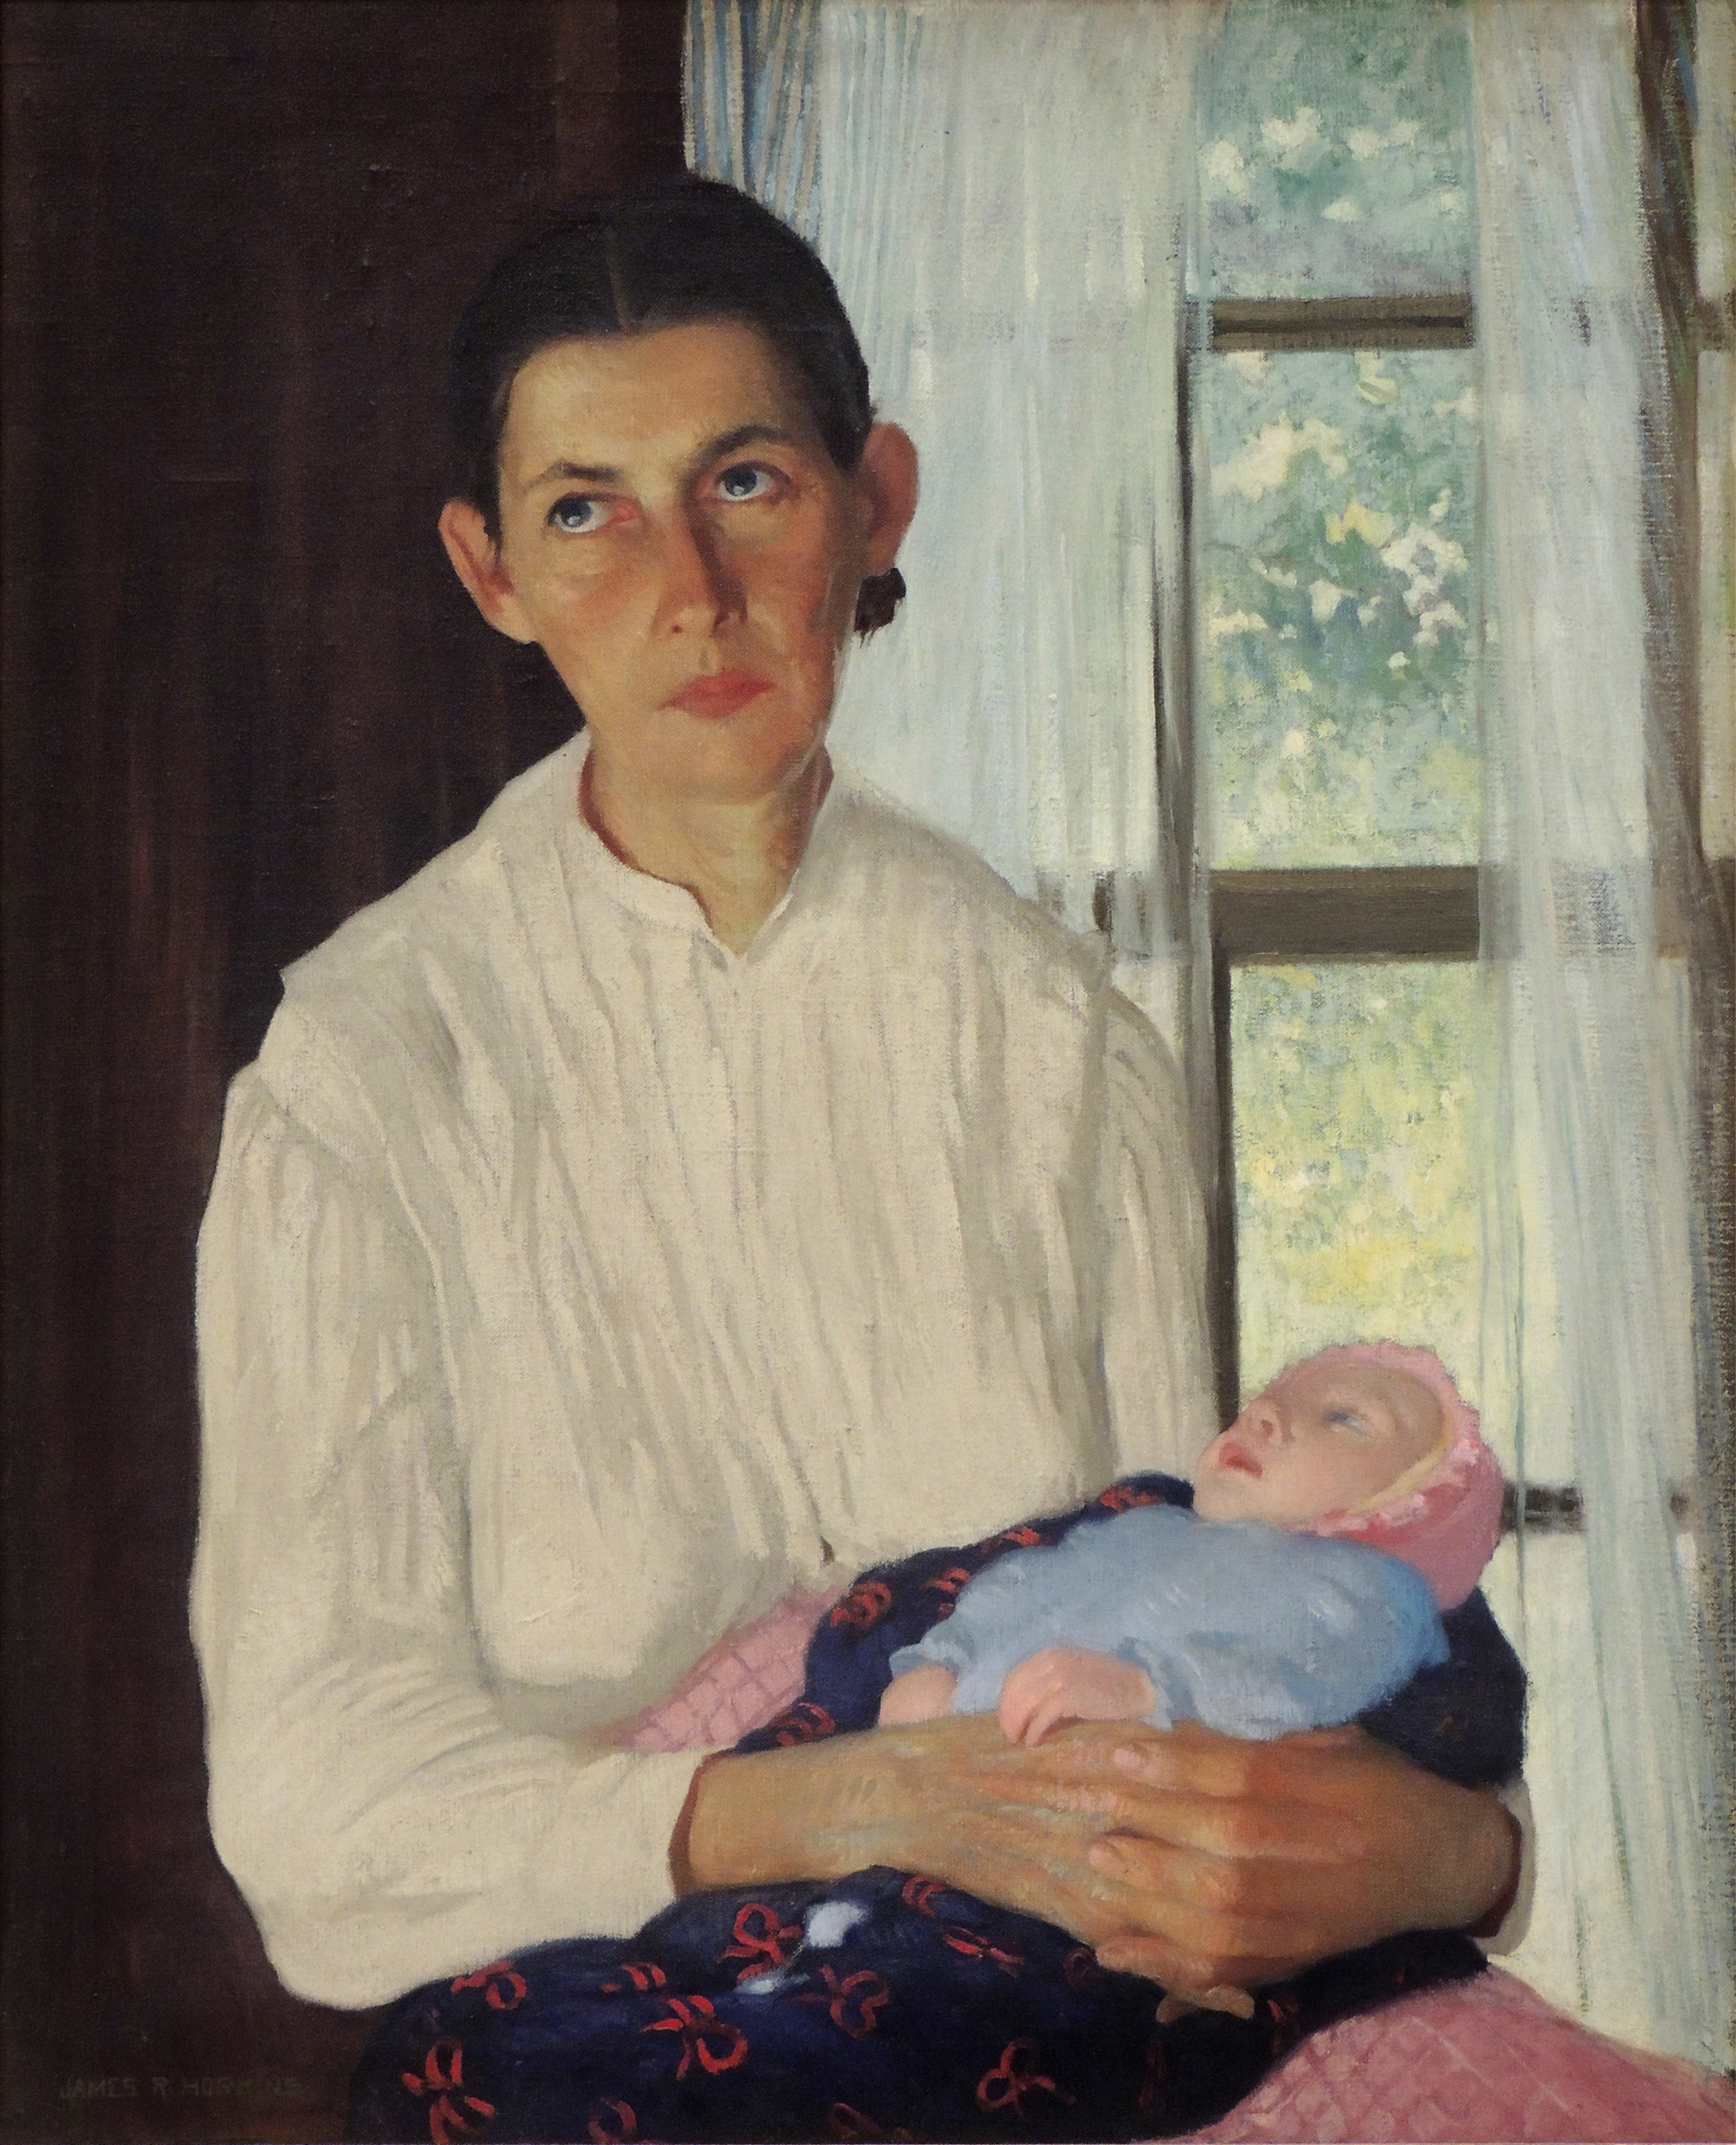 James R. Hopkins | CUMBERLAND WOMAN WITH BABY | oil on canvas | 32 x 26"